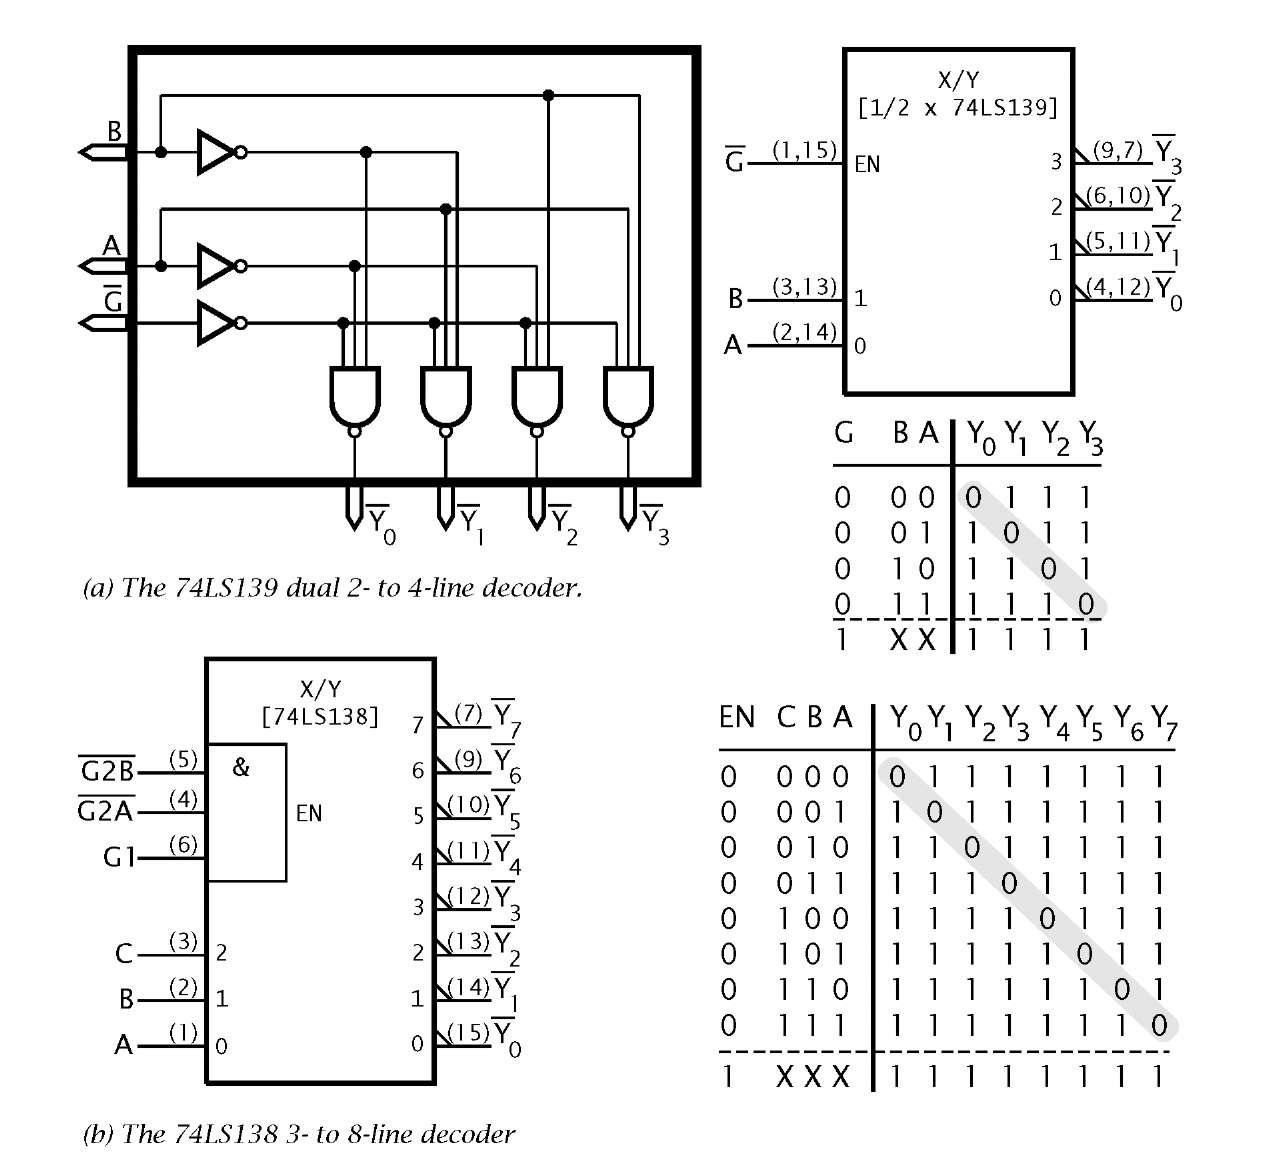 Logic Circuitry Part 1 Pic Microcontroller Construct A Circuit Diagram The 74ls138 And 139 Msi Natural Decoders